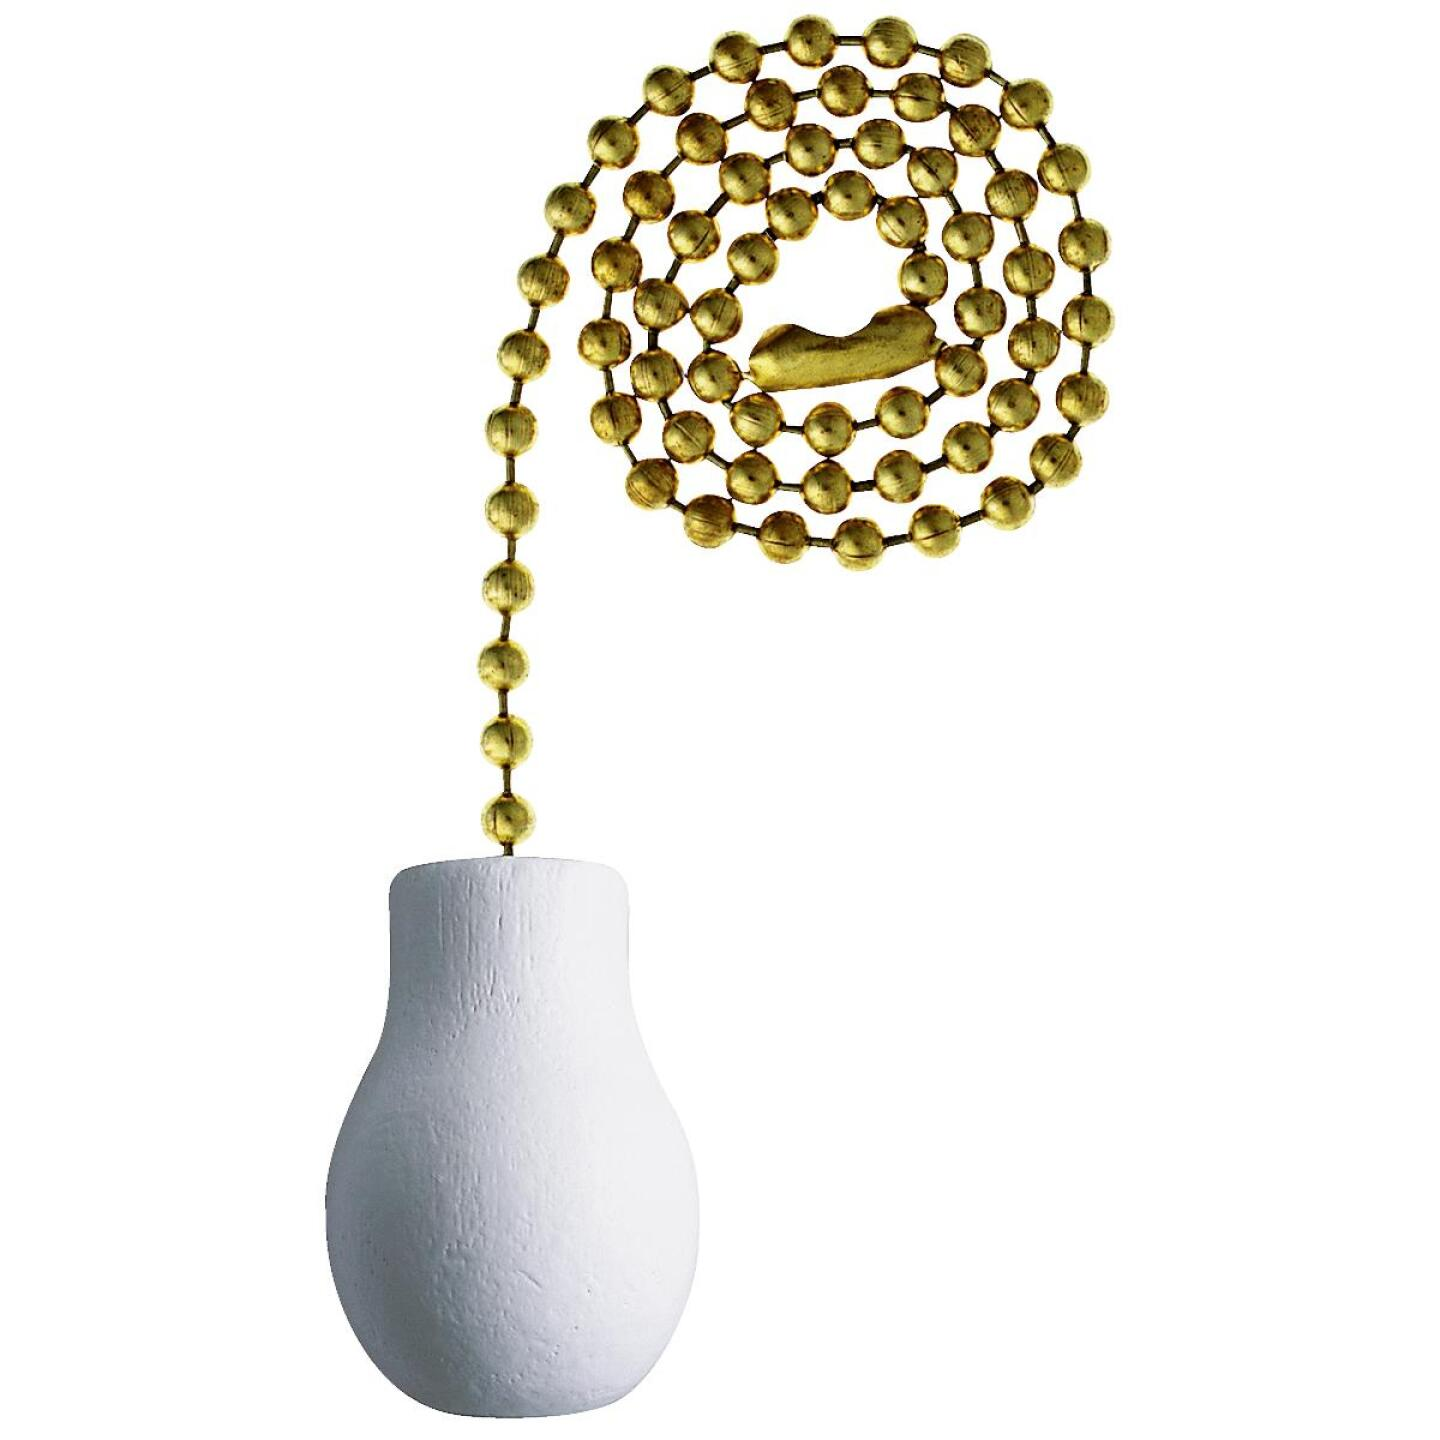 Westinghouse 12 In. Polished Brass Pull Chain with White Wood Knob Ornament Image 1